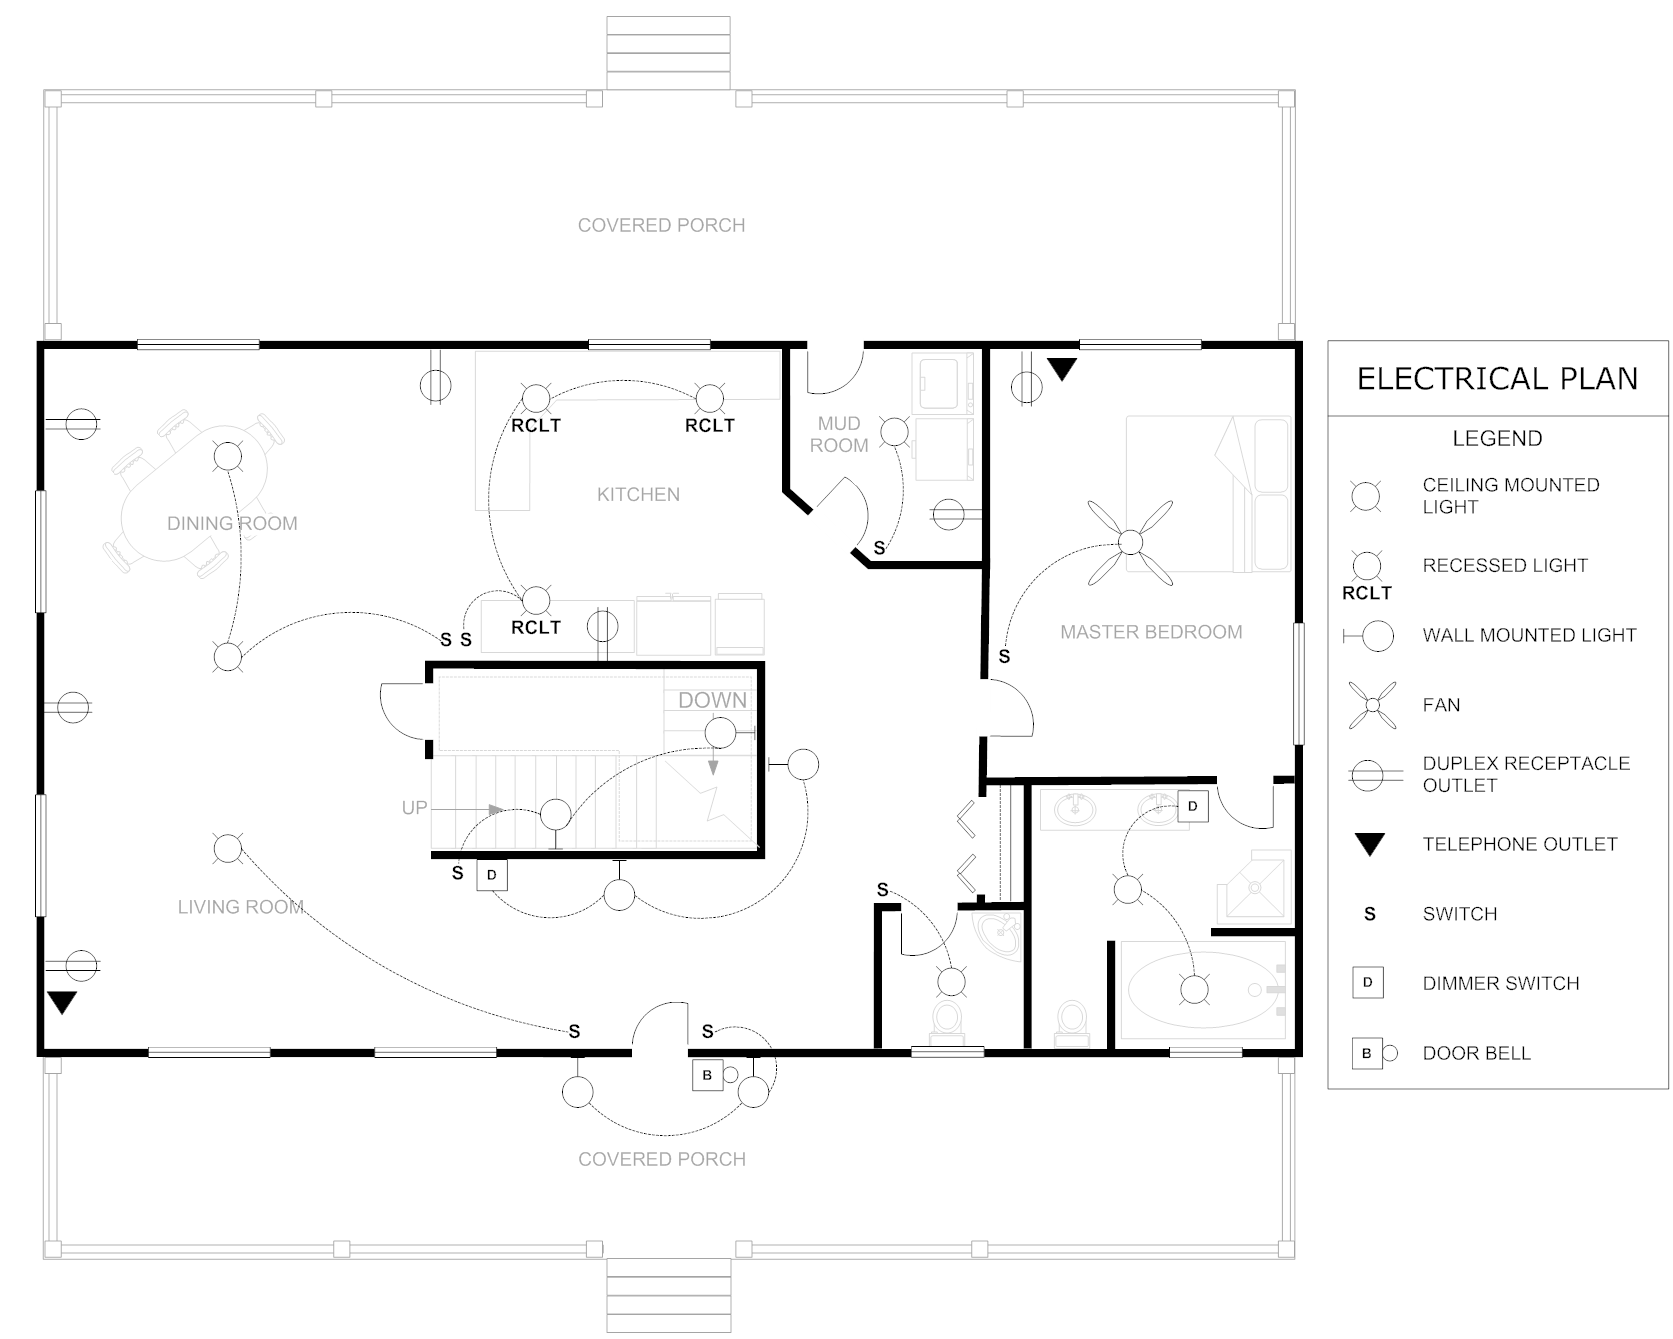 floor plan example house electrical - home plans & blueprints | #45918  house plans - floor plans - architectural styles